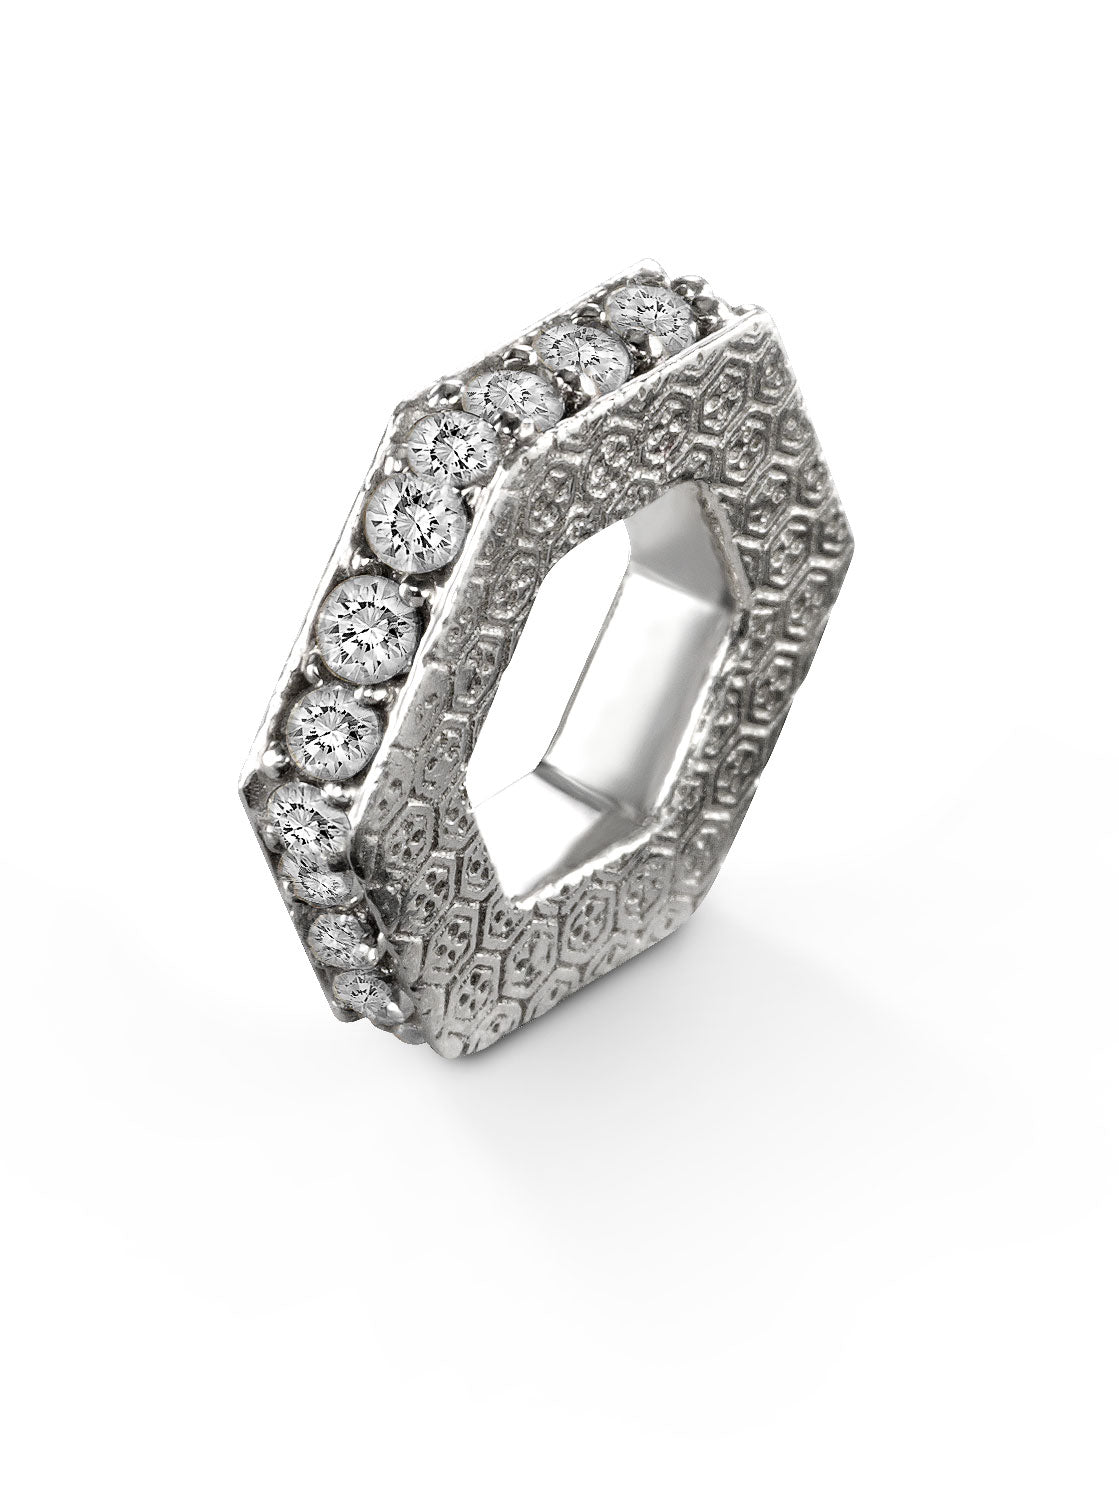 Bcouture April Keepsake-White Topaz at Arman's Jewellers Kitchener